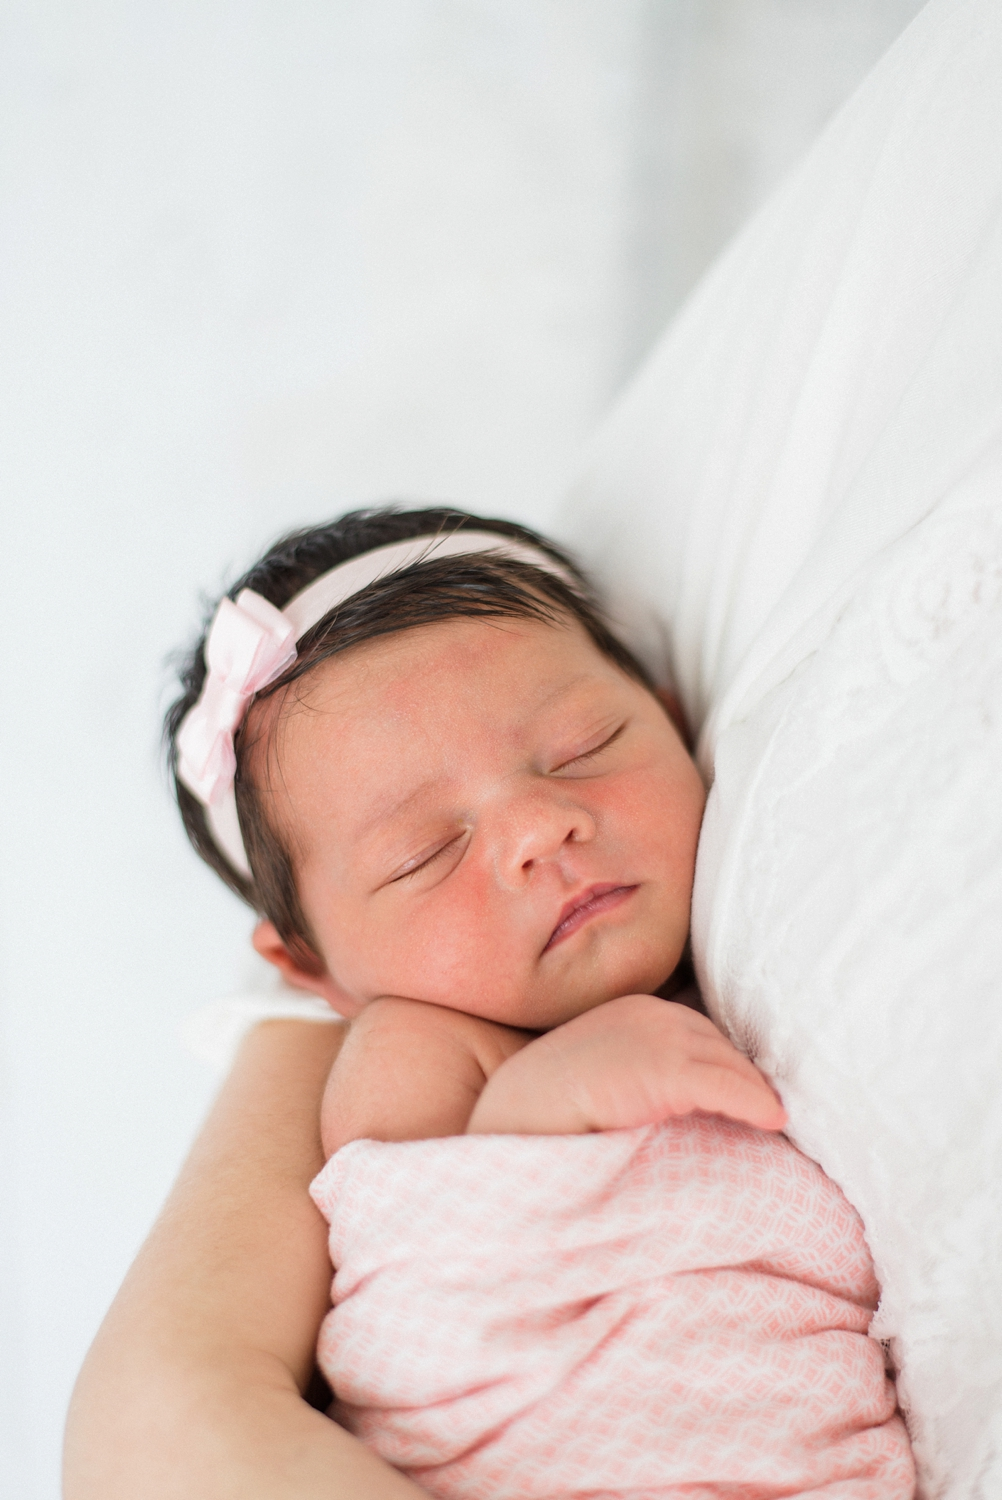 portland-newborn-photographer-baby-girl-shelley-marie-photo-10